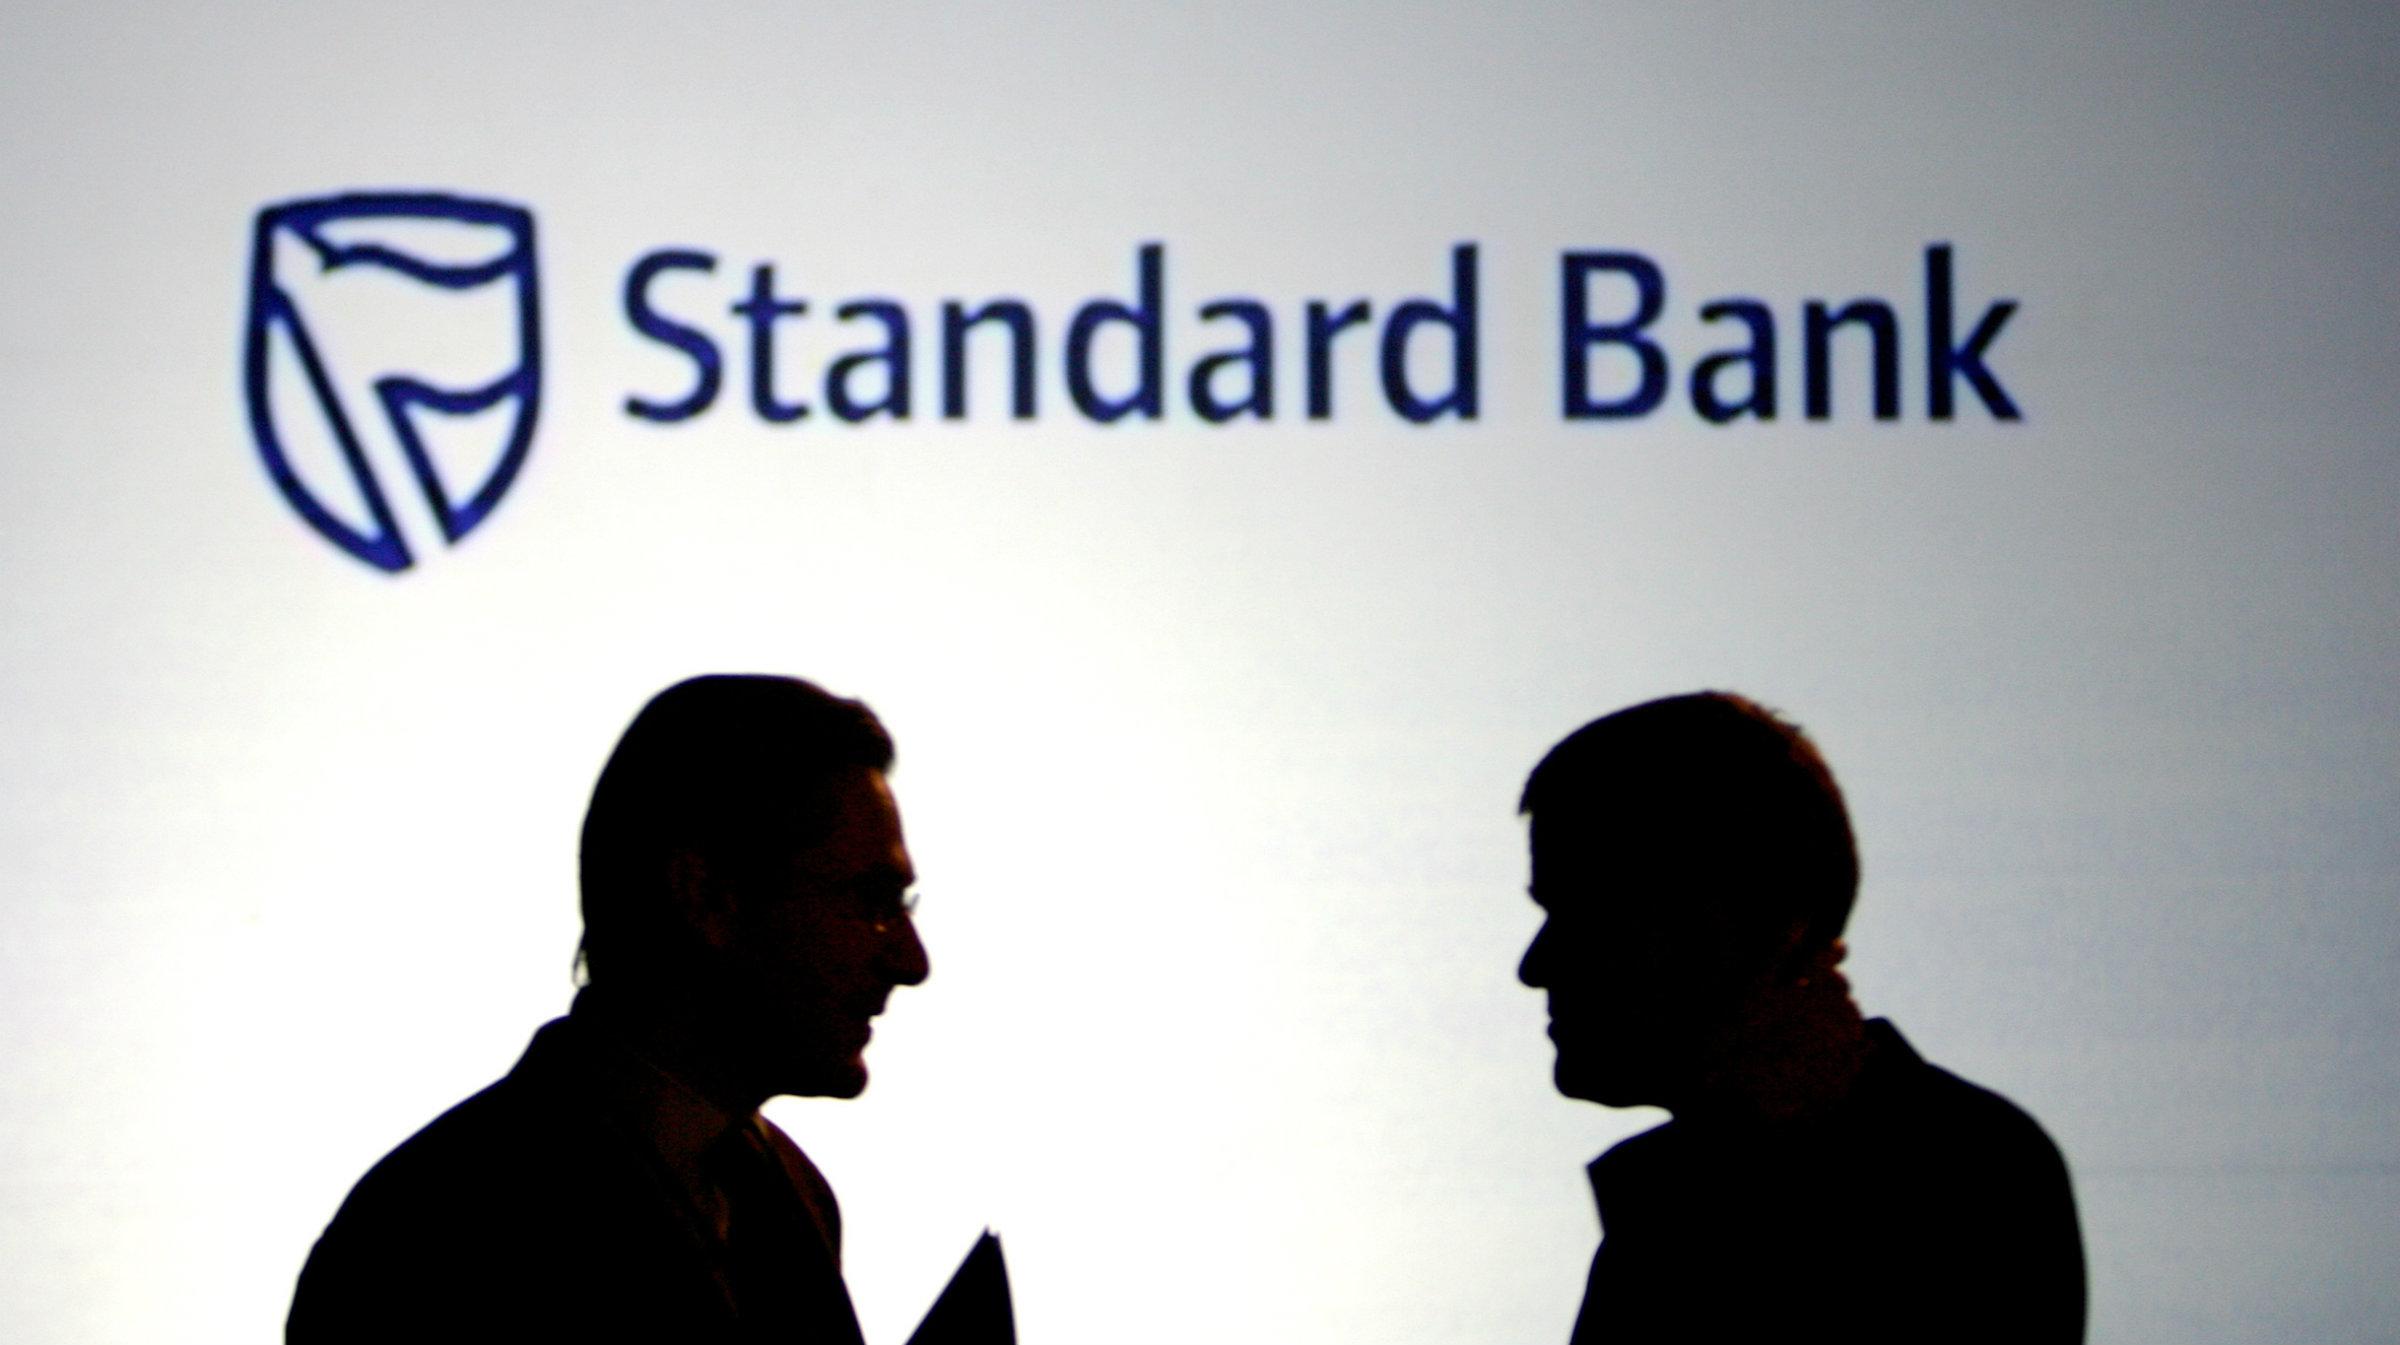 standard bank sign with men in the front in shaadow